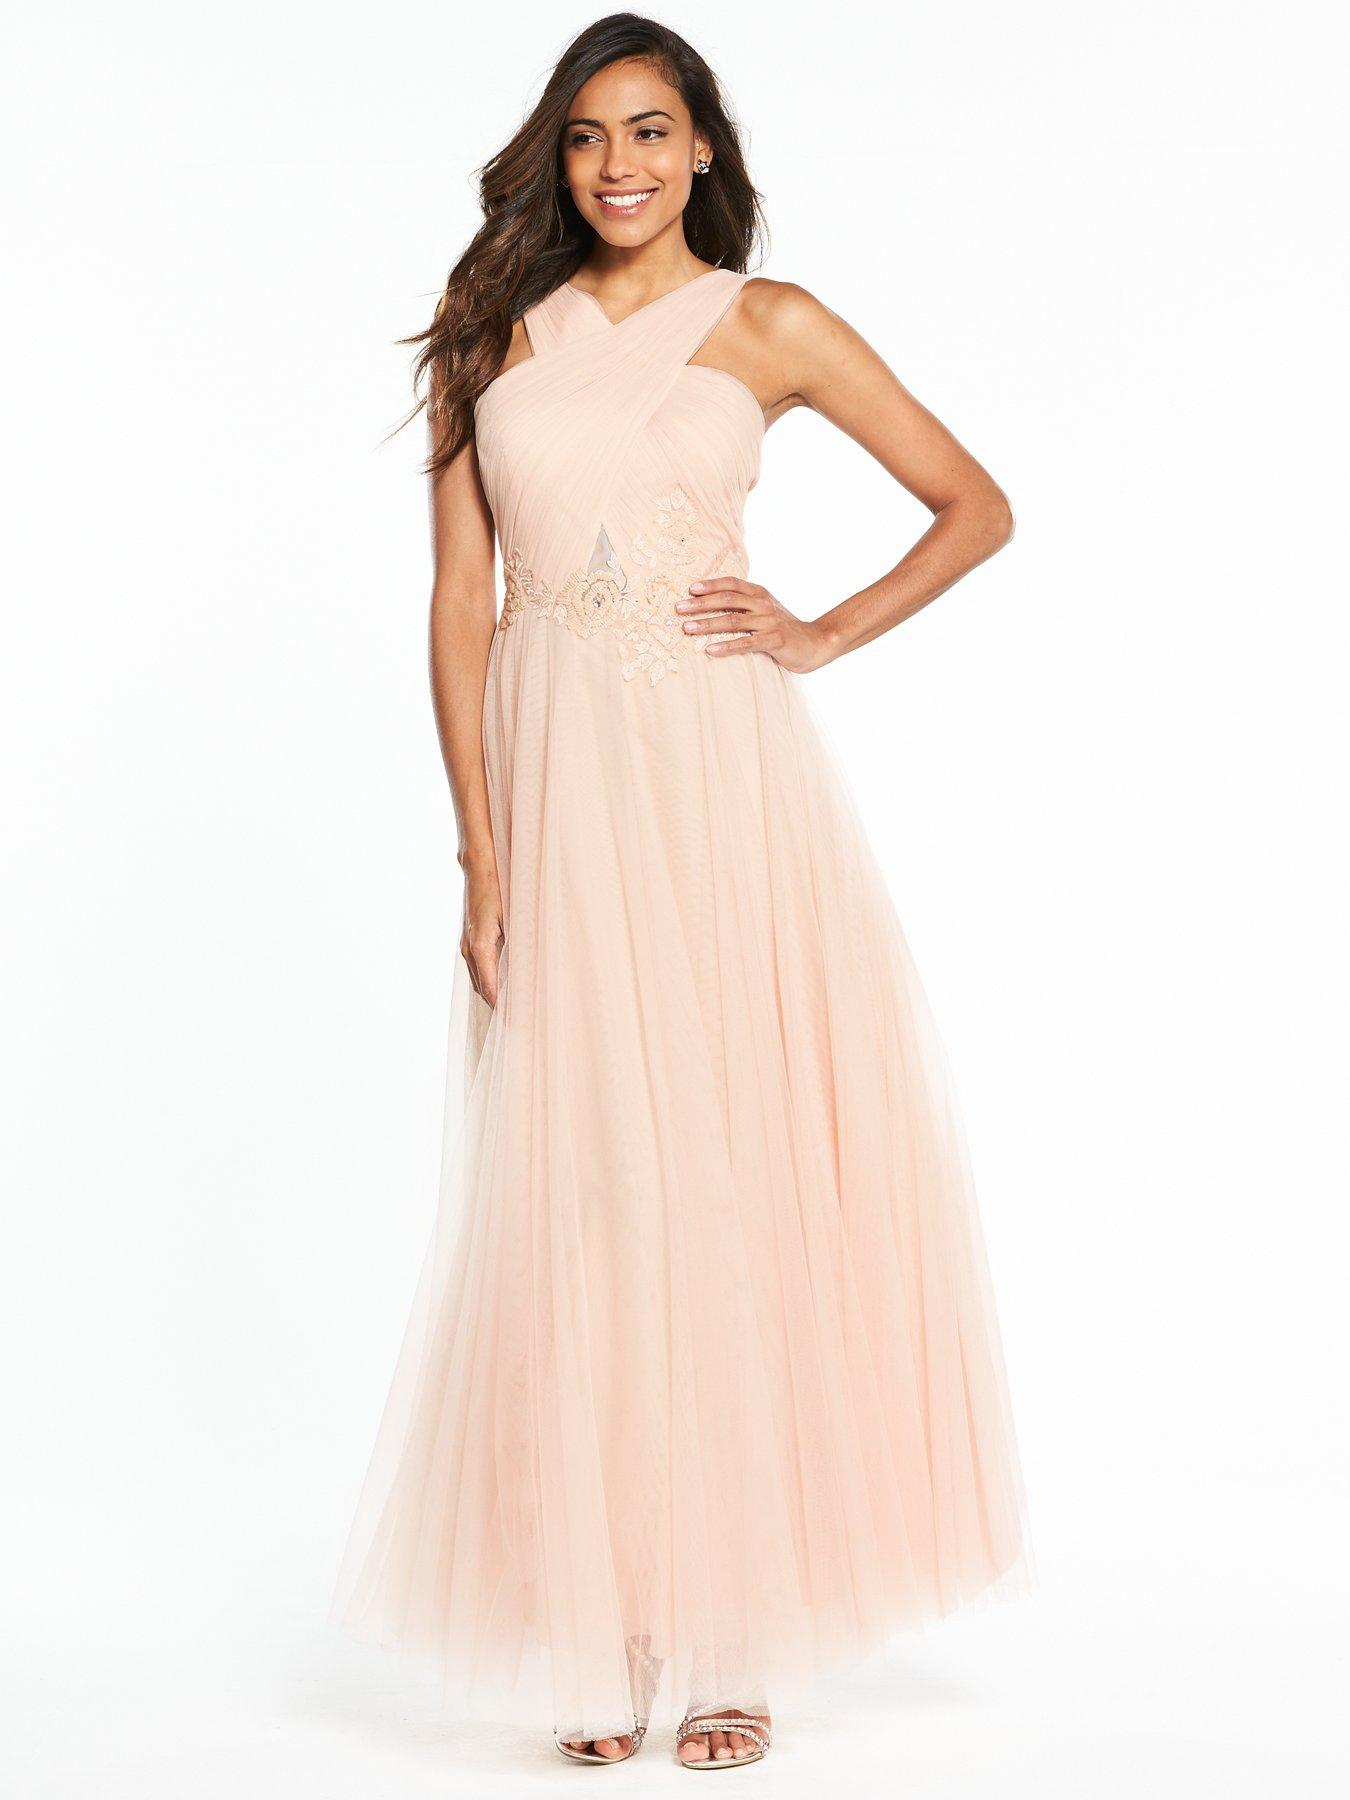 Debs Dresses Clearance